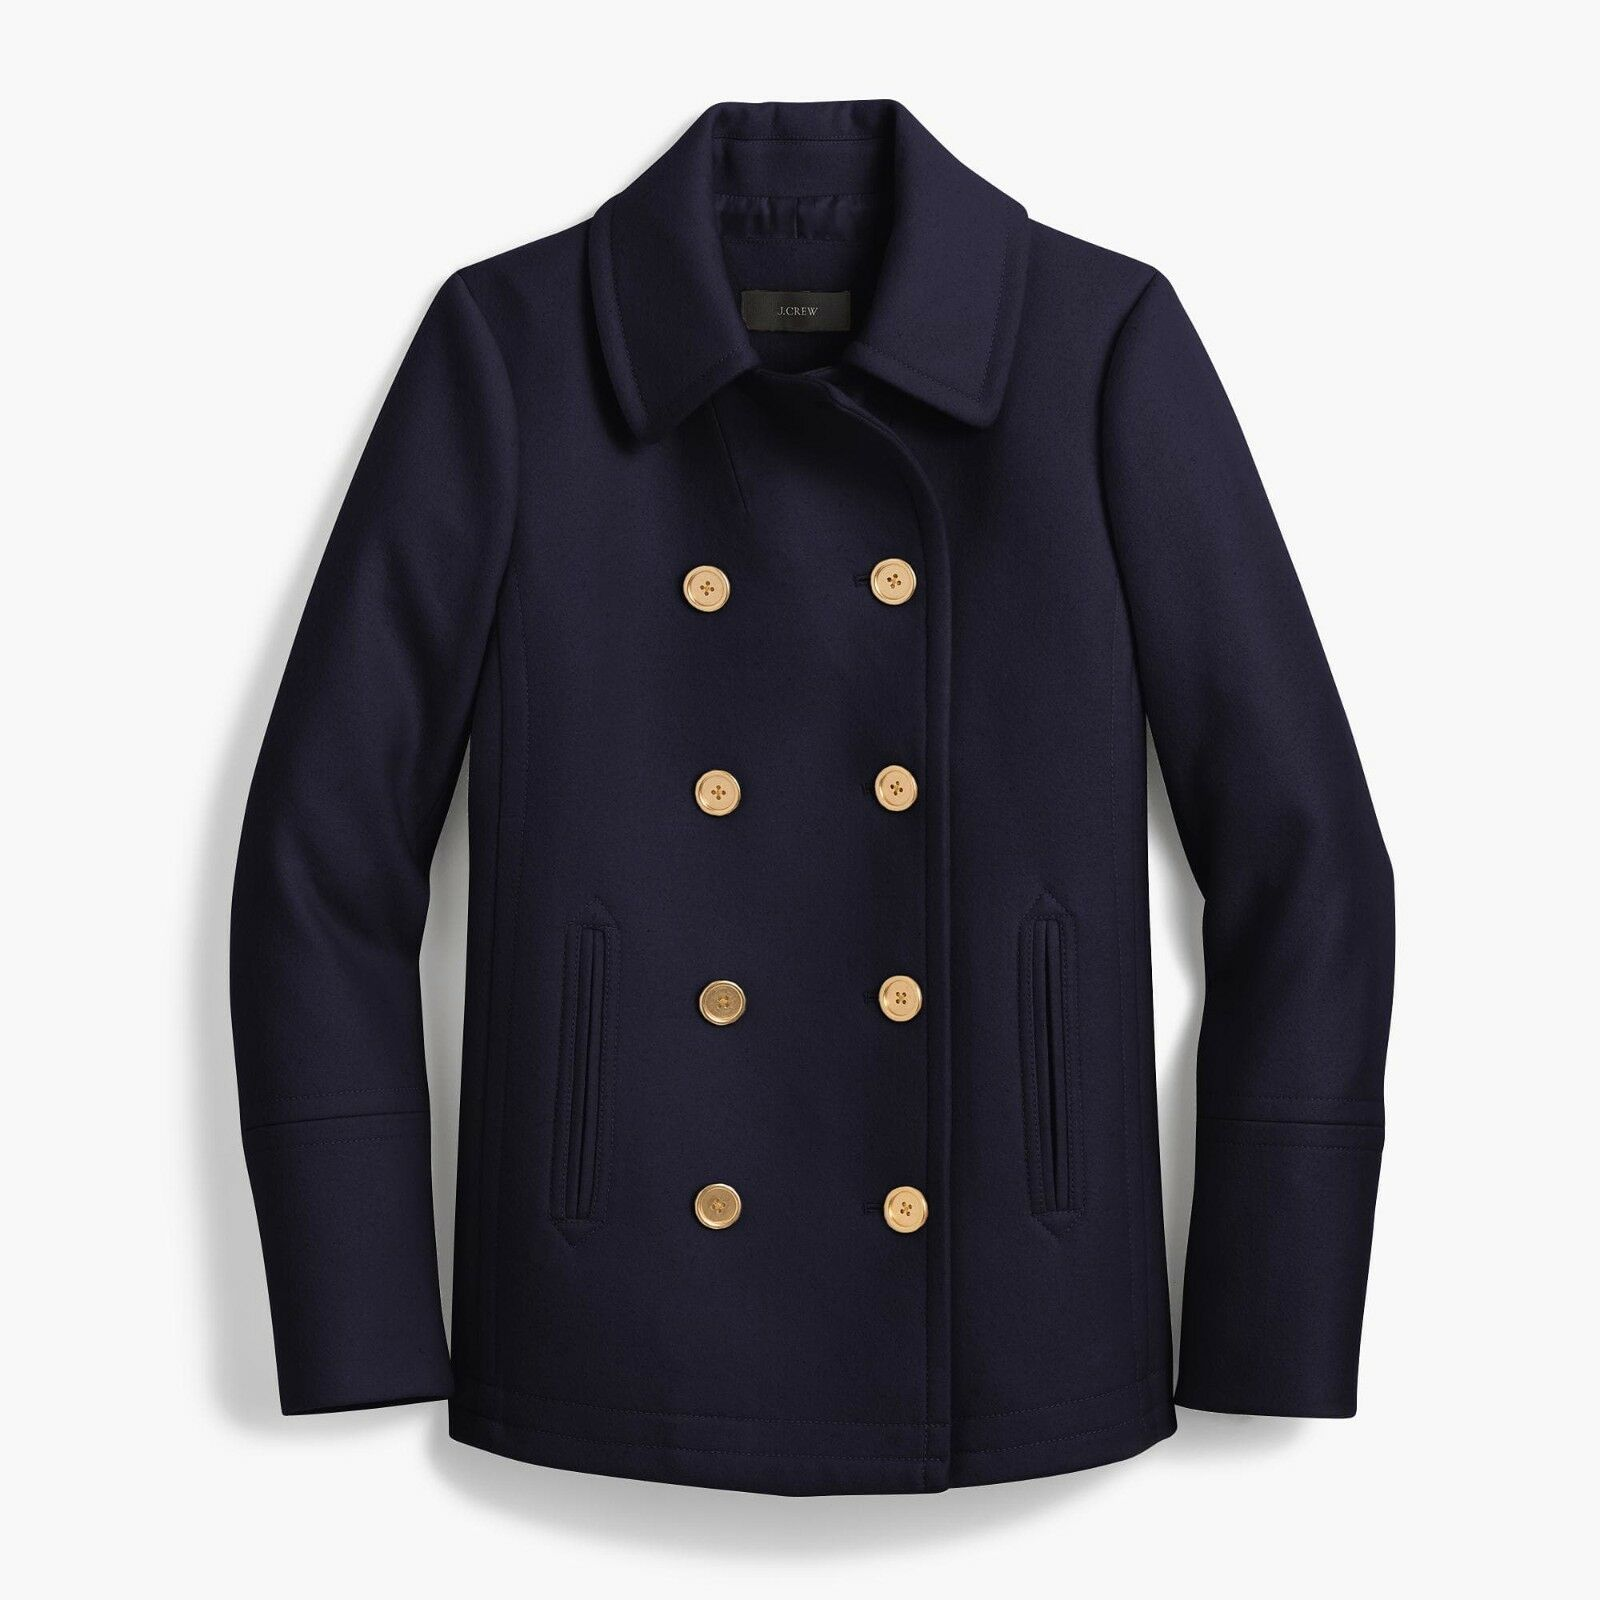 NWT J Crew Women's 2008 Andover Peacoat in Italian Wool - Navy - 6